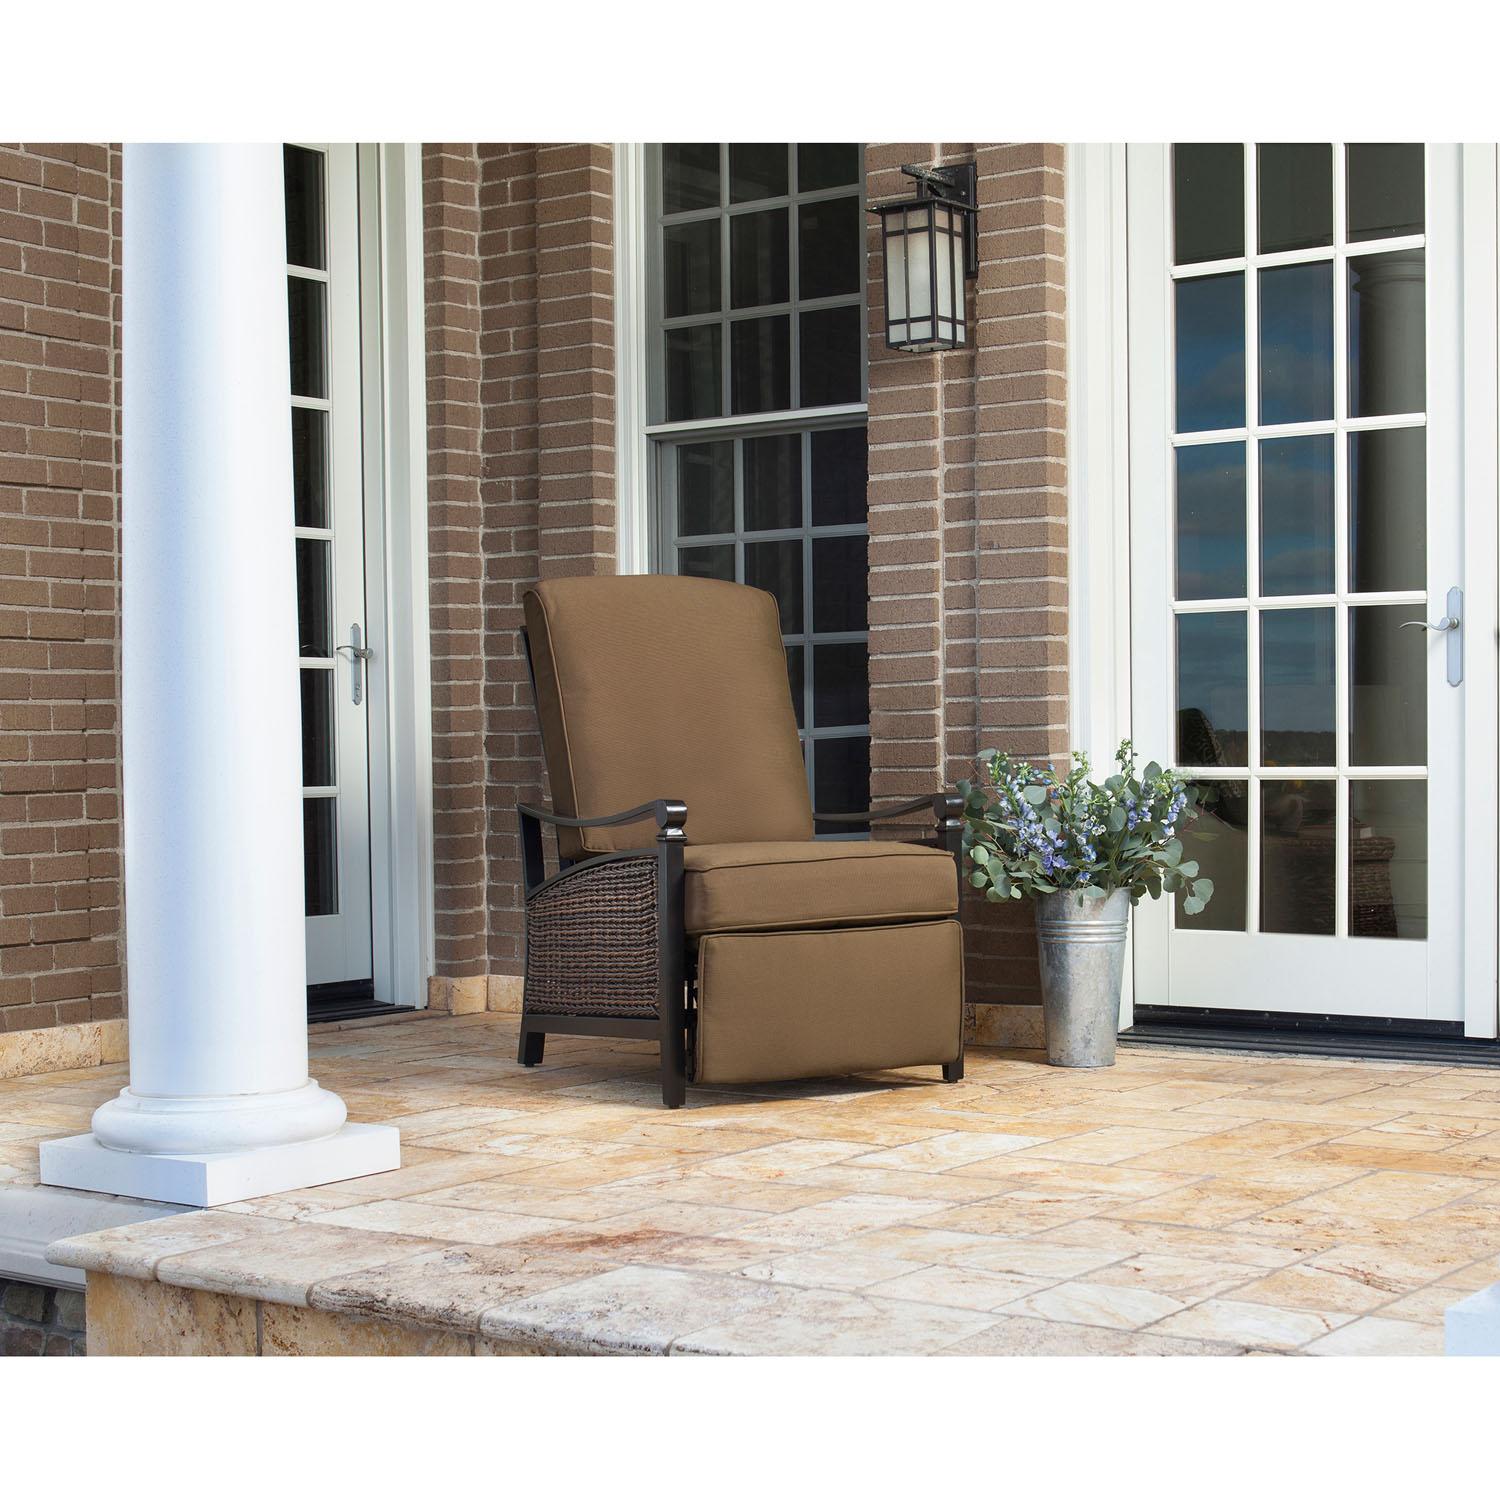 La-Z Boy Outdoor Carson Luxury Recliner